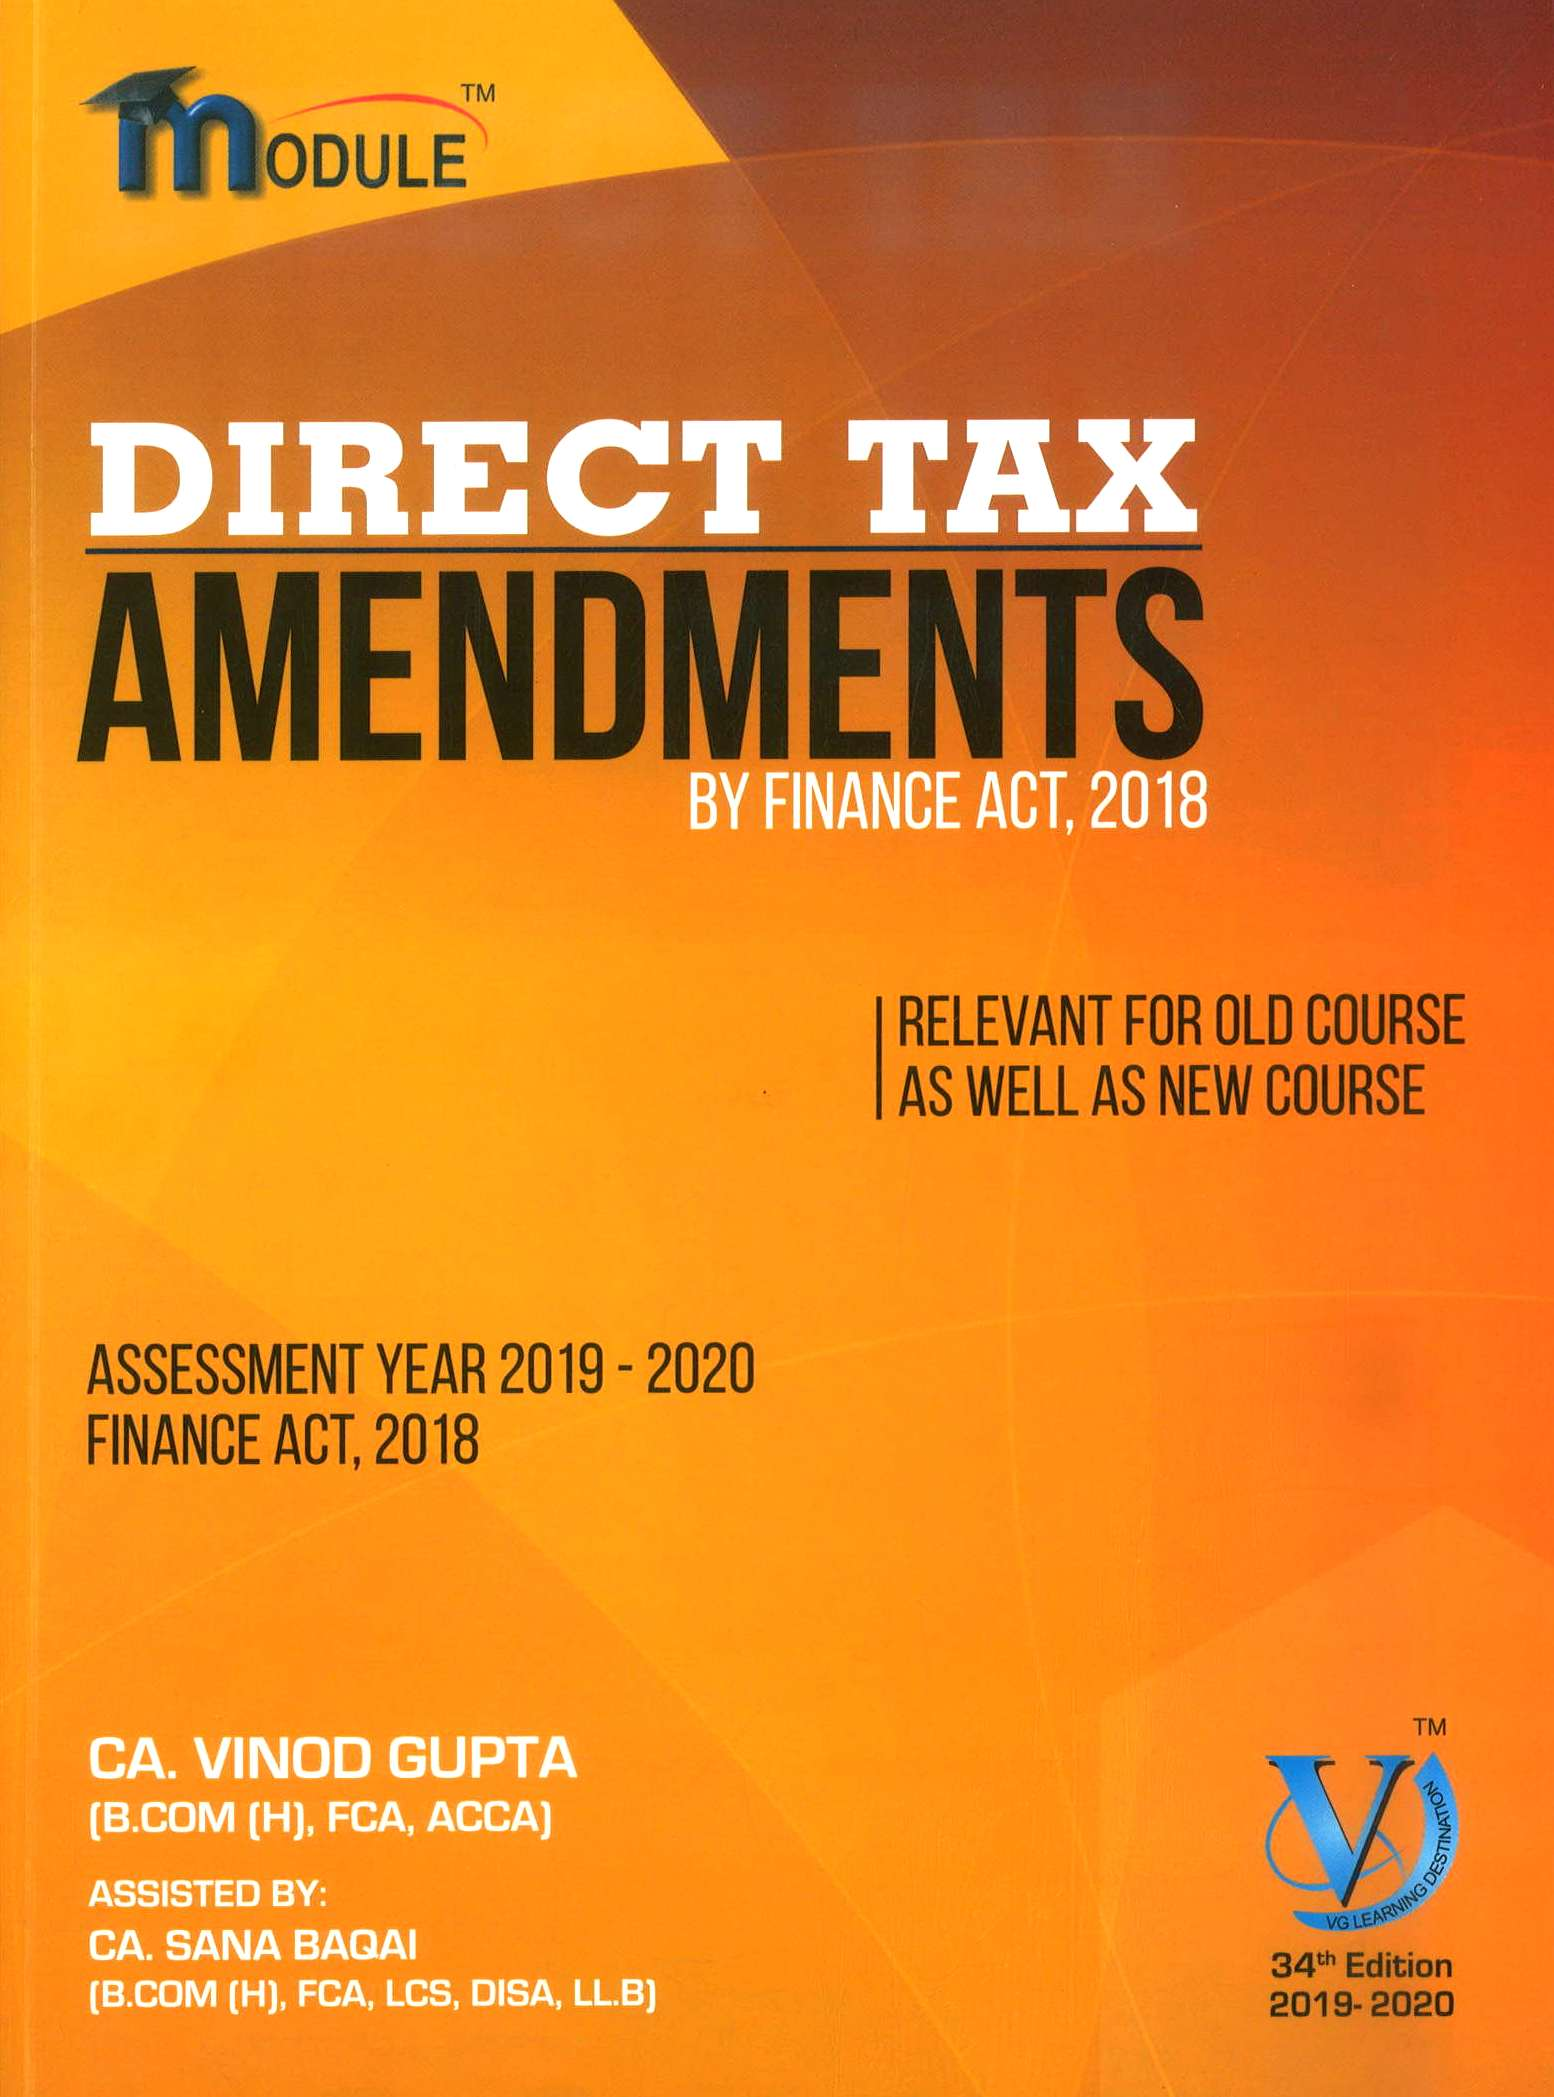 VG Learning Destination DIRECT TAX – AMENDMENT Module for CA Final by Vinod Gupta Applicable for May 2019 Exam (VG Learning Destination Publishing) Edition 2019